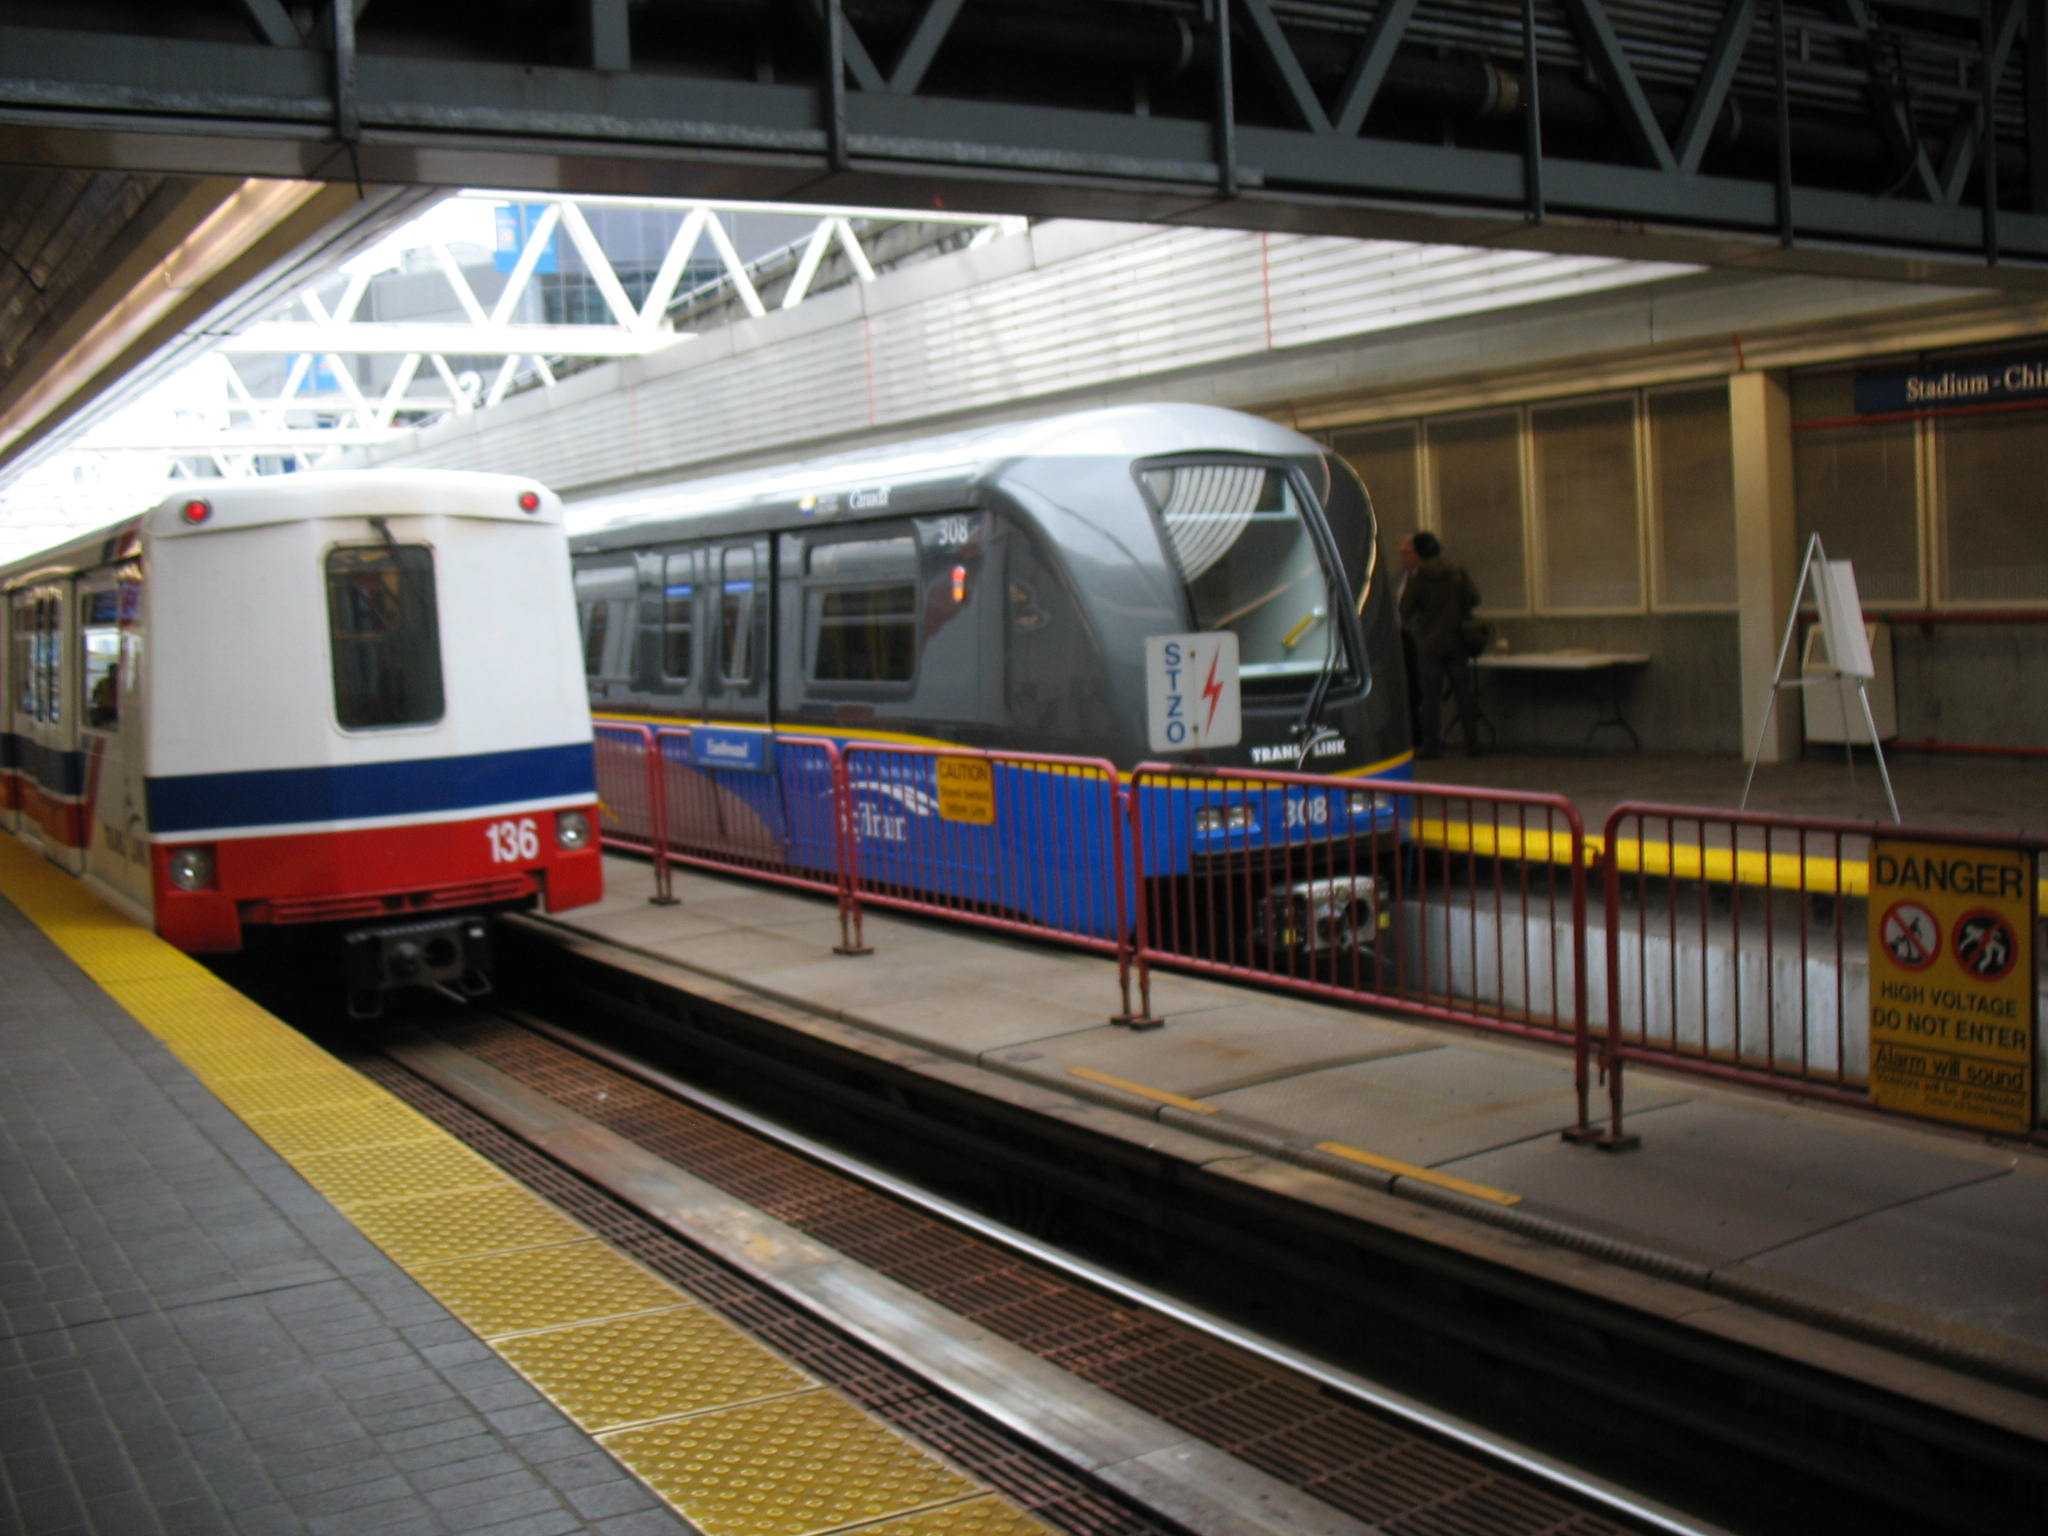 The new SkyTrain car, sitting on the Stadium Station side track.